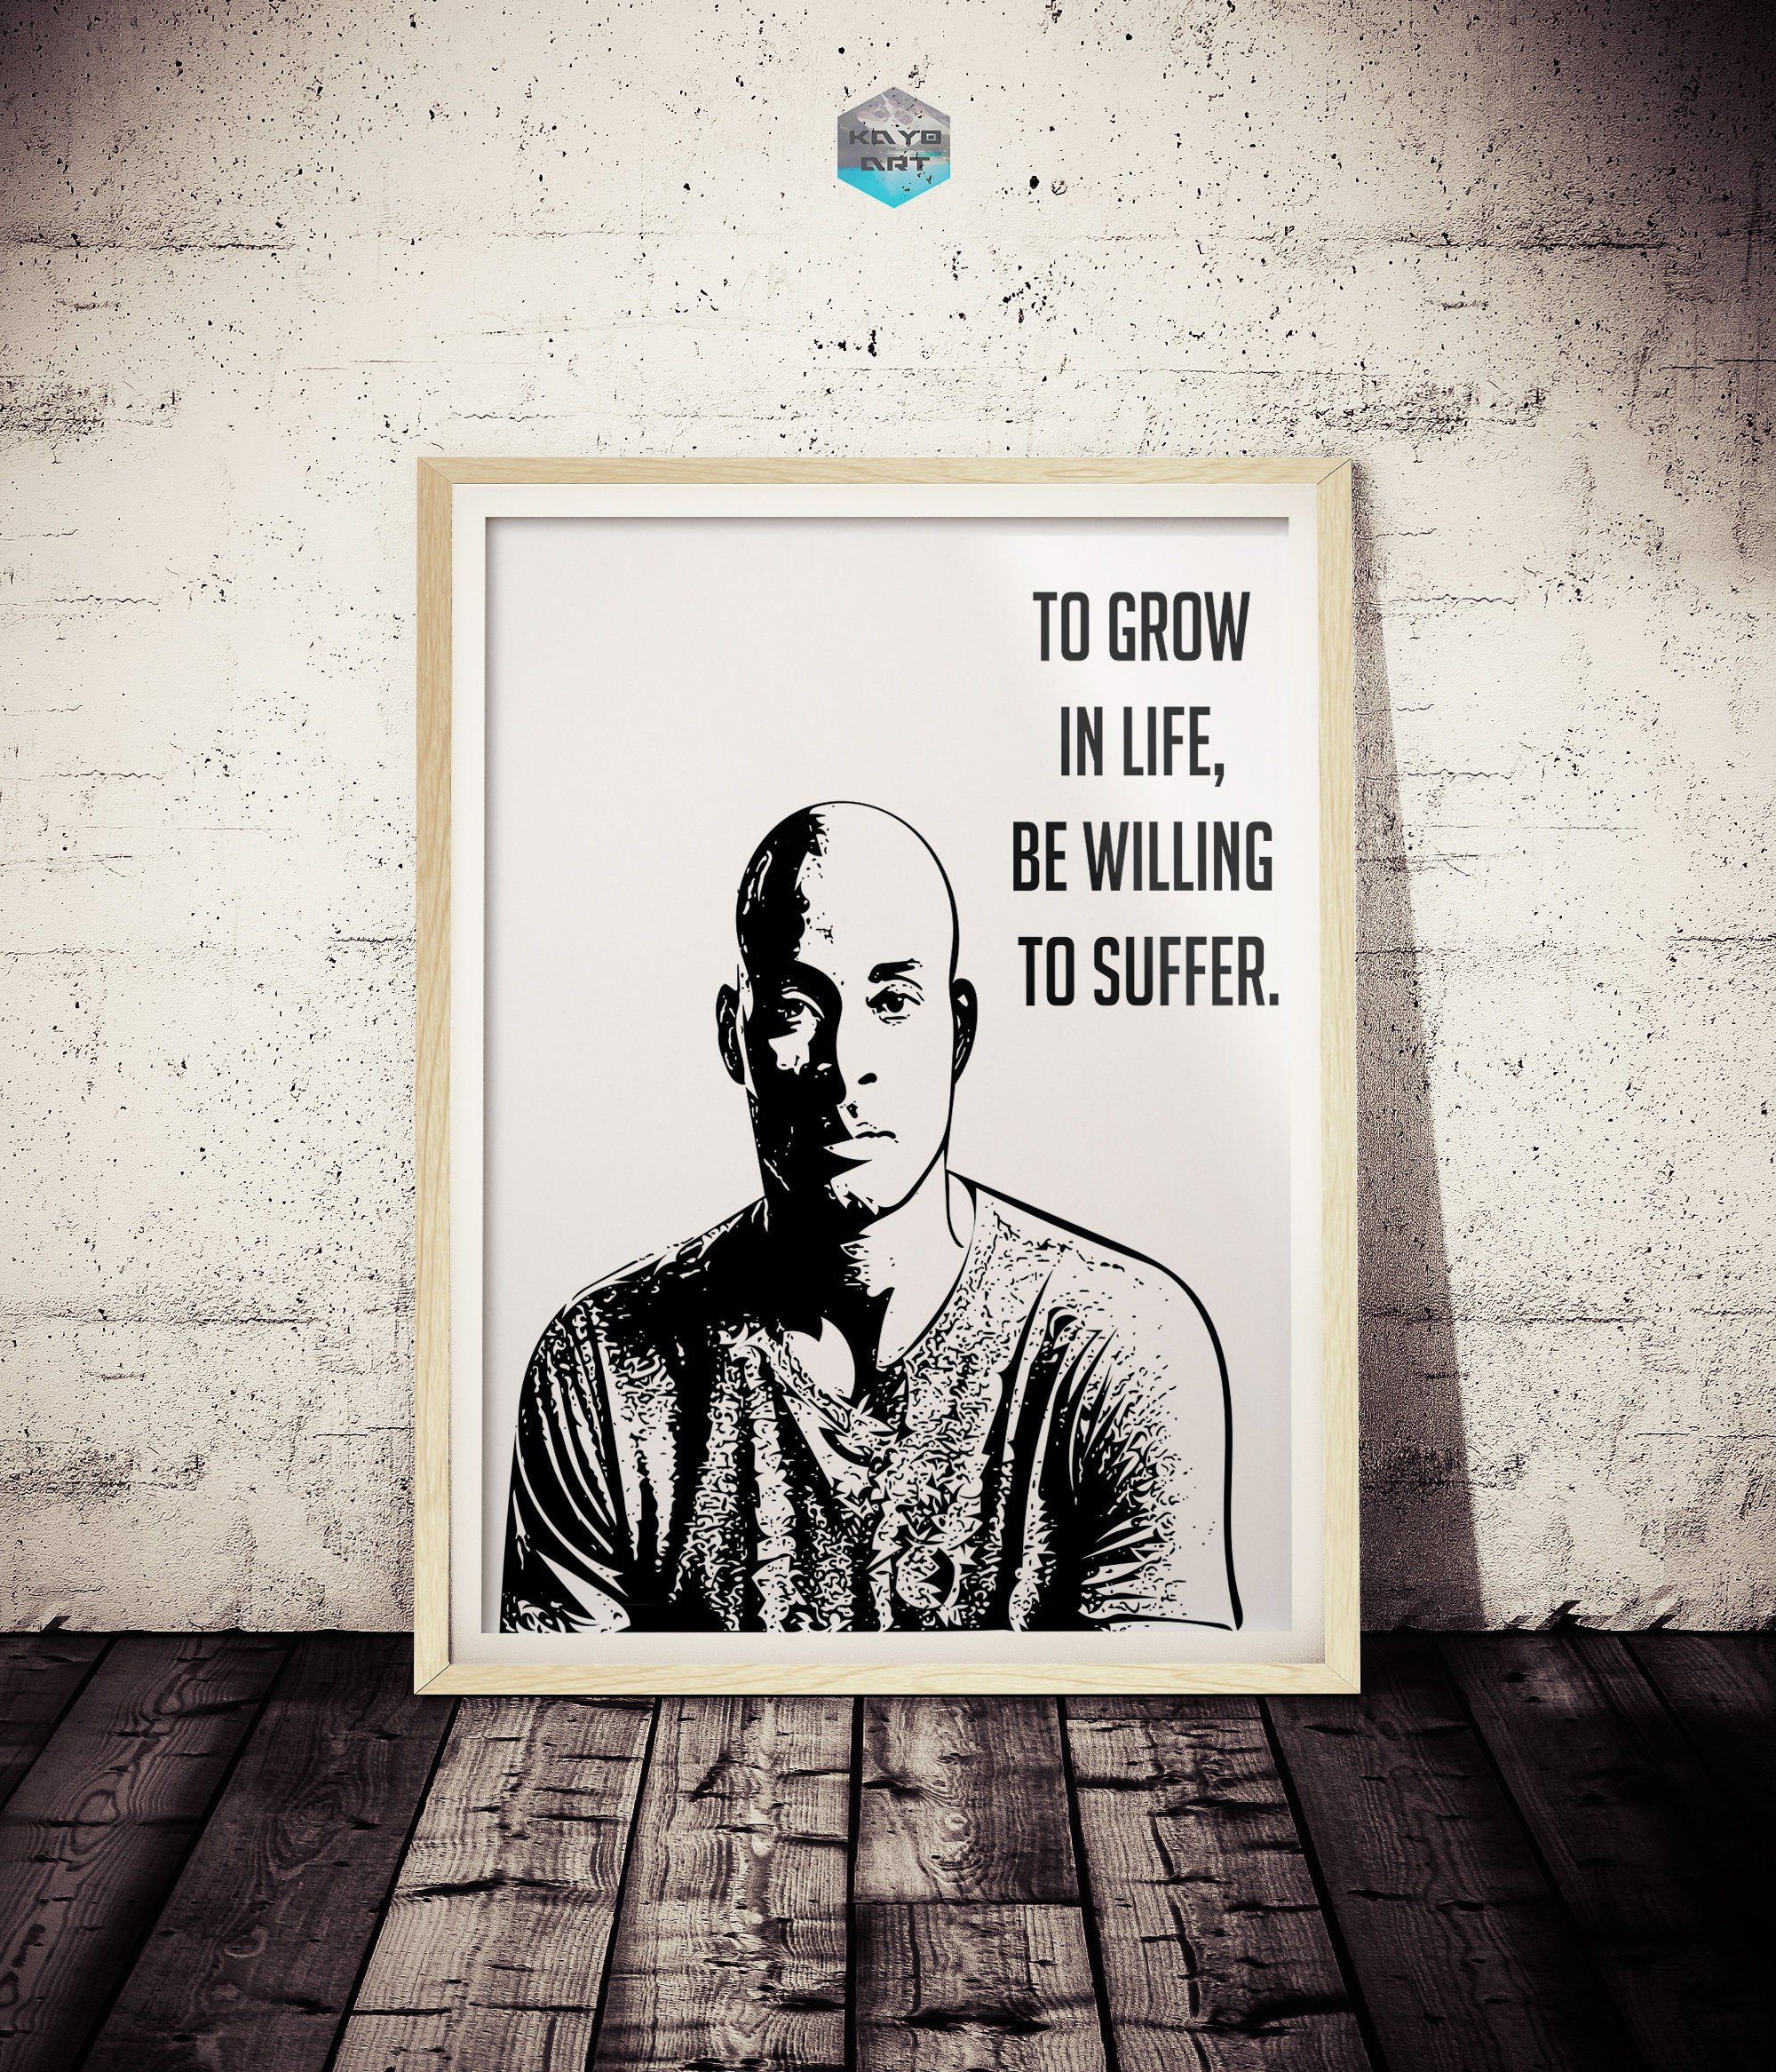 David Goggins Original Art Print Suffer Navy Seal David Giggins Gym Motivation Inspirational Art Poster Black An Original Art Art Prints Art Inspiration